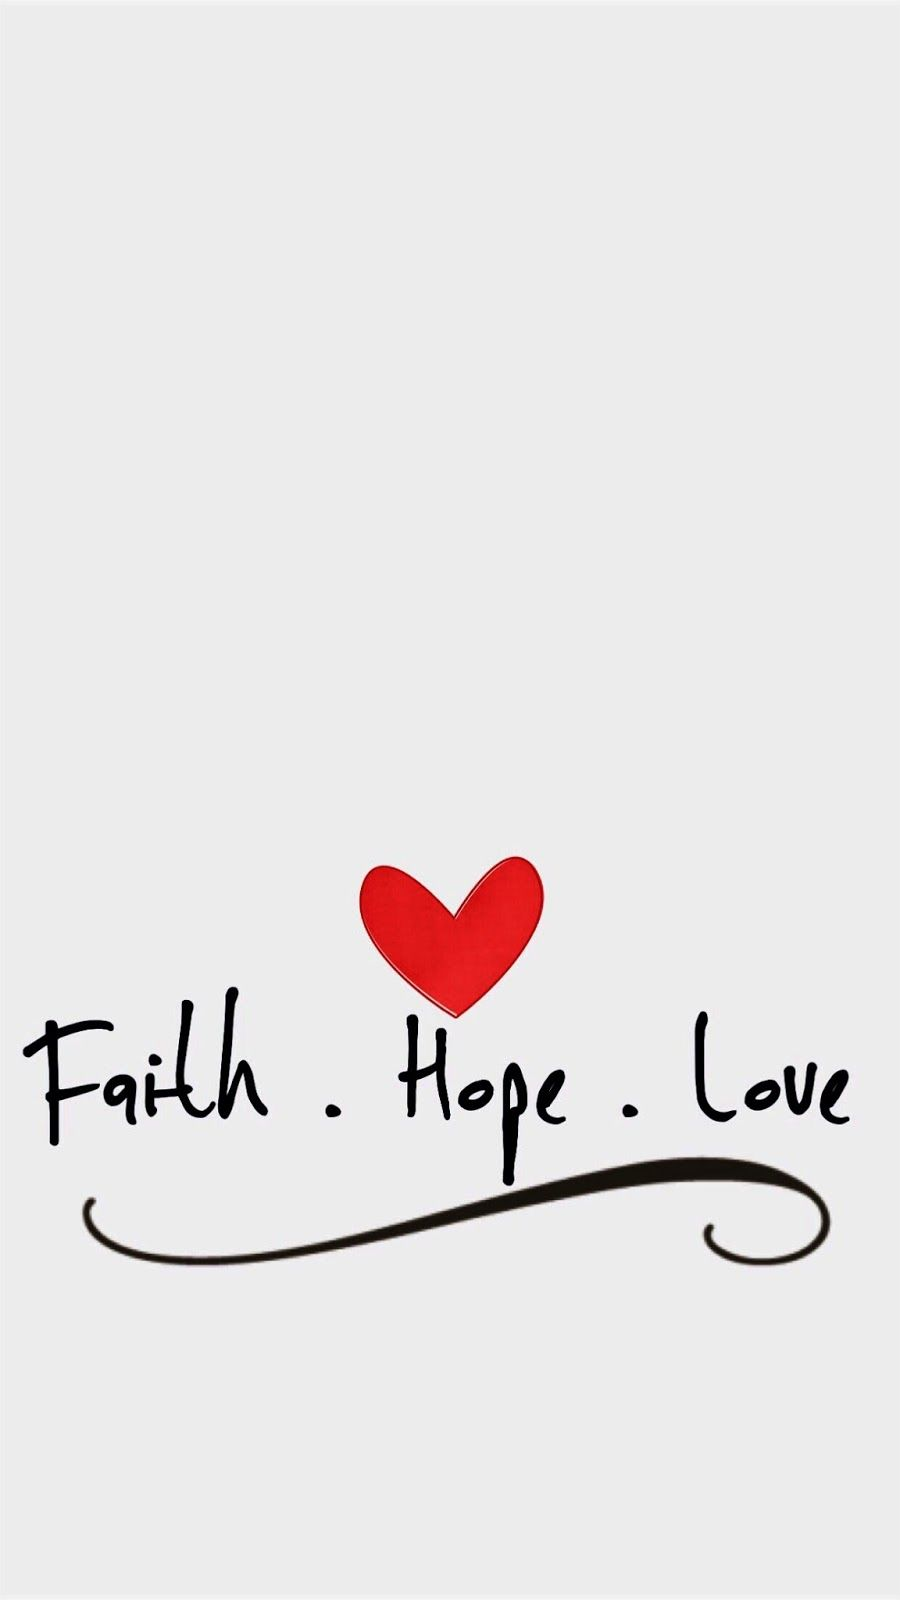 Pin By I Am On Love Wallpaper Happy Valentine S Day Hope Wallpaper Love Wallpaper Inspirational Quotes Wallpapers